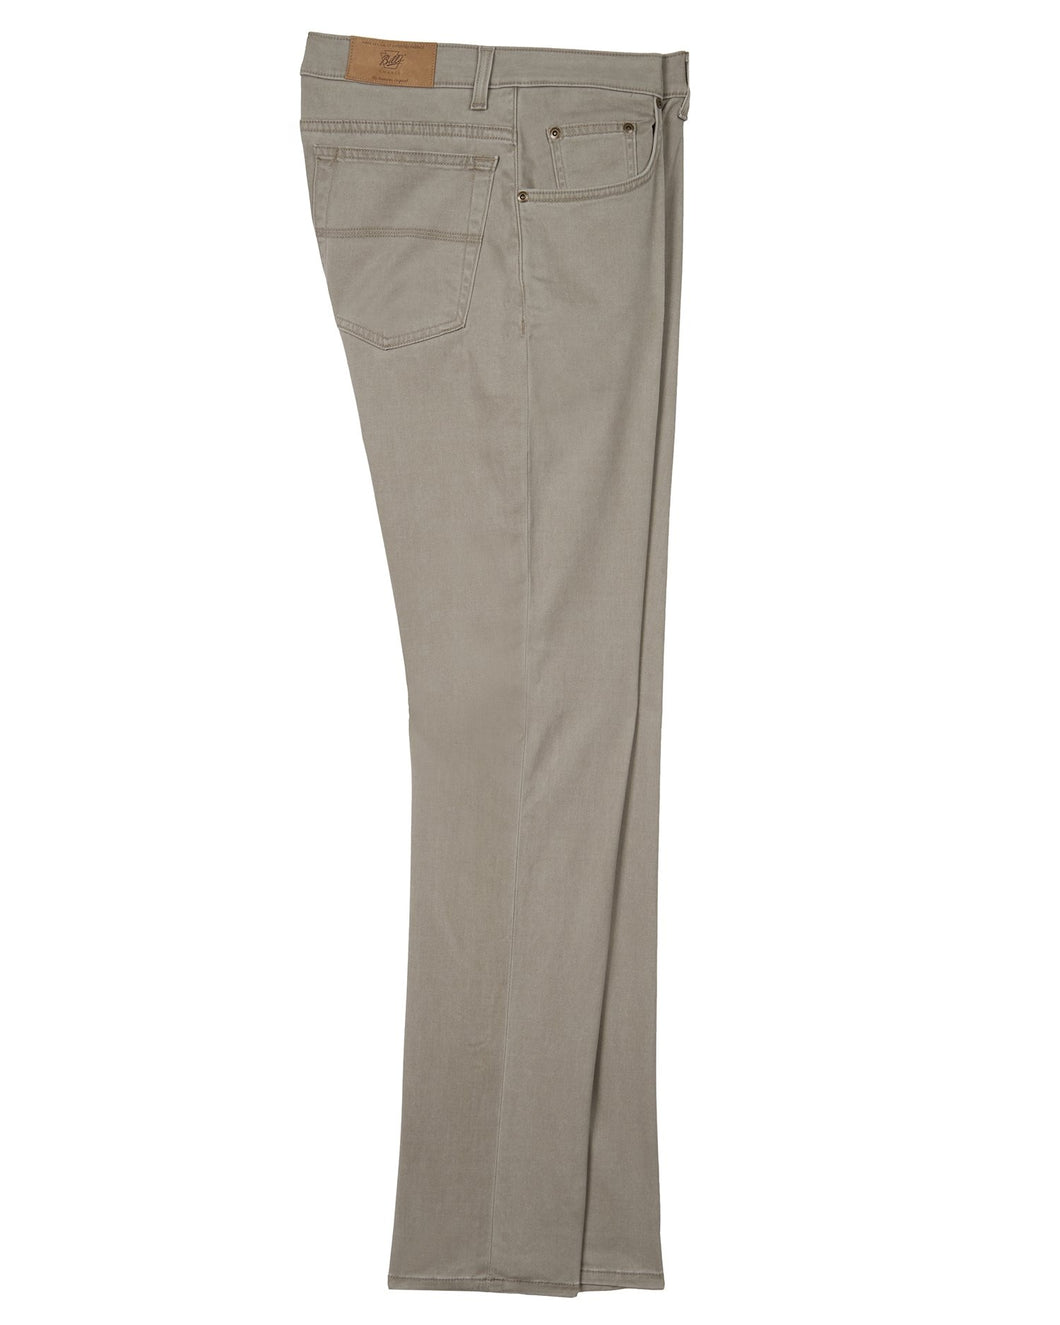 WAIST SIZES 28-32 - 5-pkt - Straight Fit - Comfort Stretch Twill (T400) - OYSTER